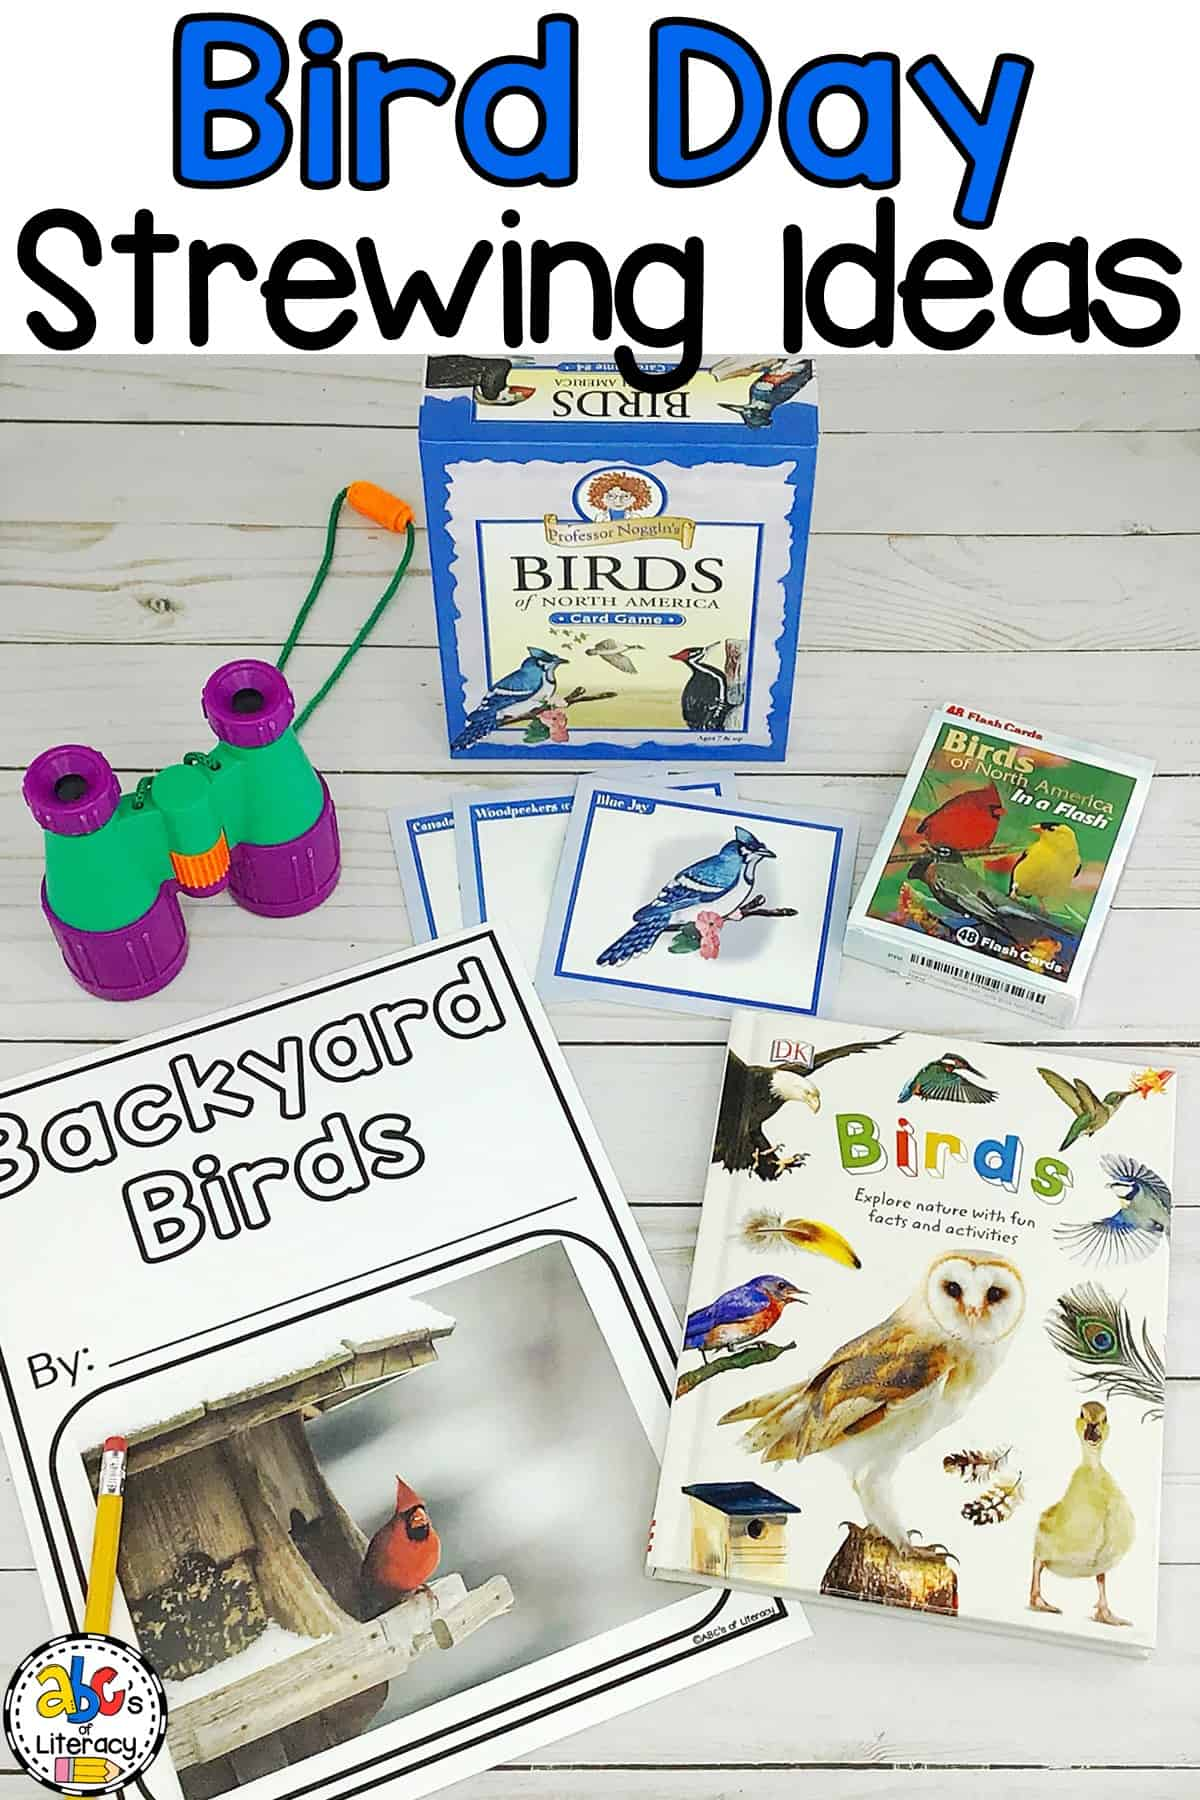 From books to games to hands-on activities, there are a lot of National Bird Day Strewing Ideas that your children will use to learn all about birds.